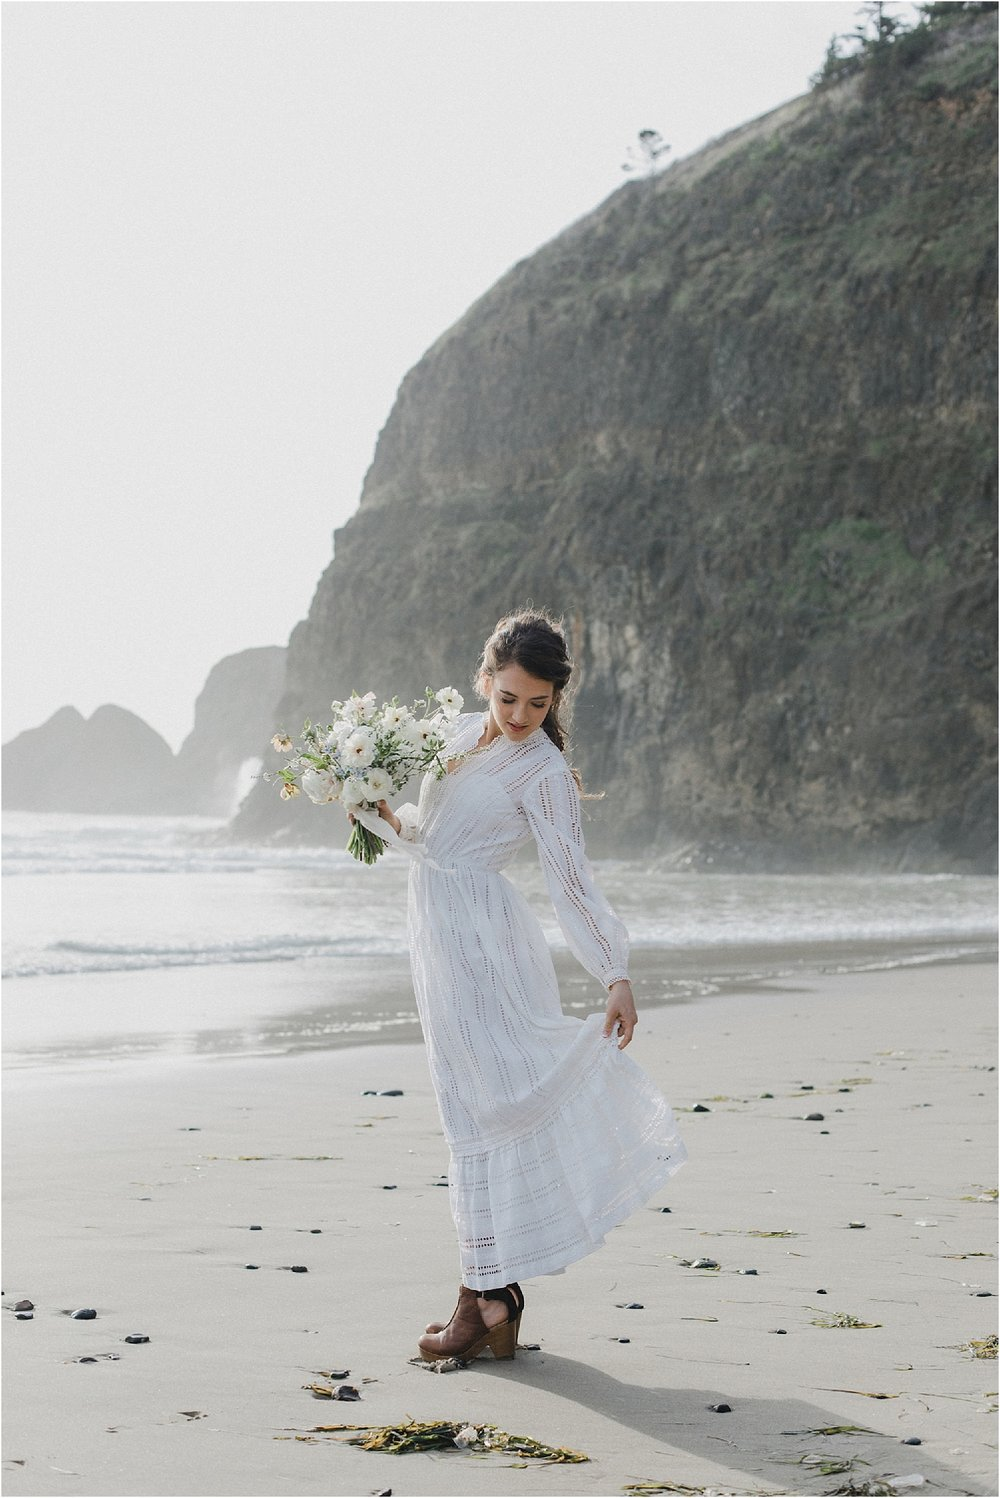 cannon-beach-oregon-elopement-08.jpg